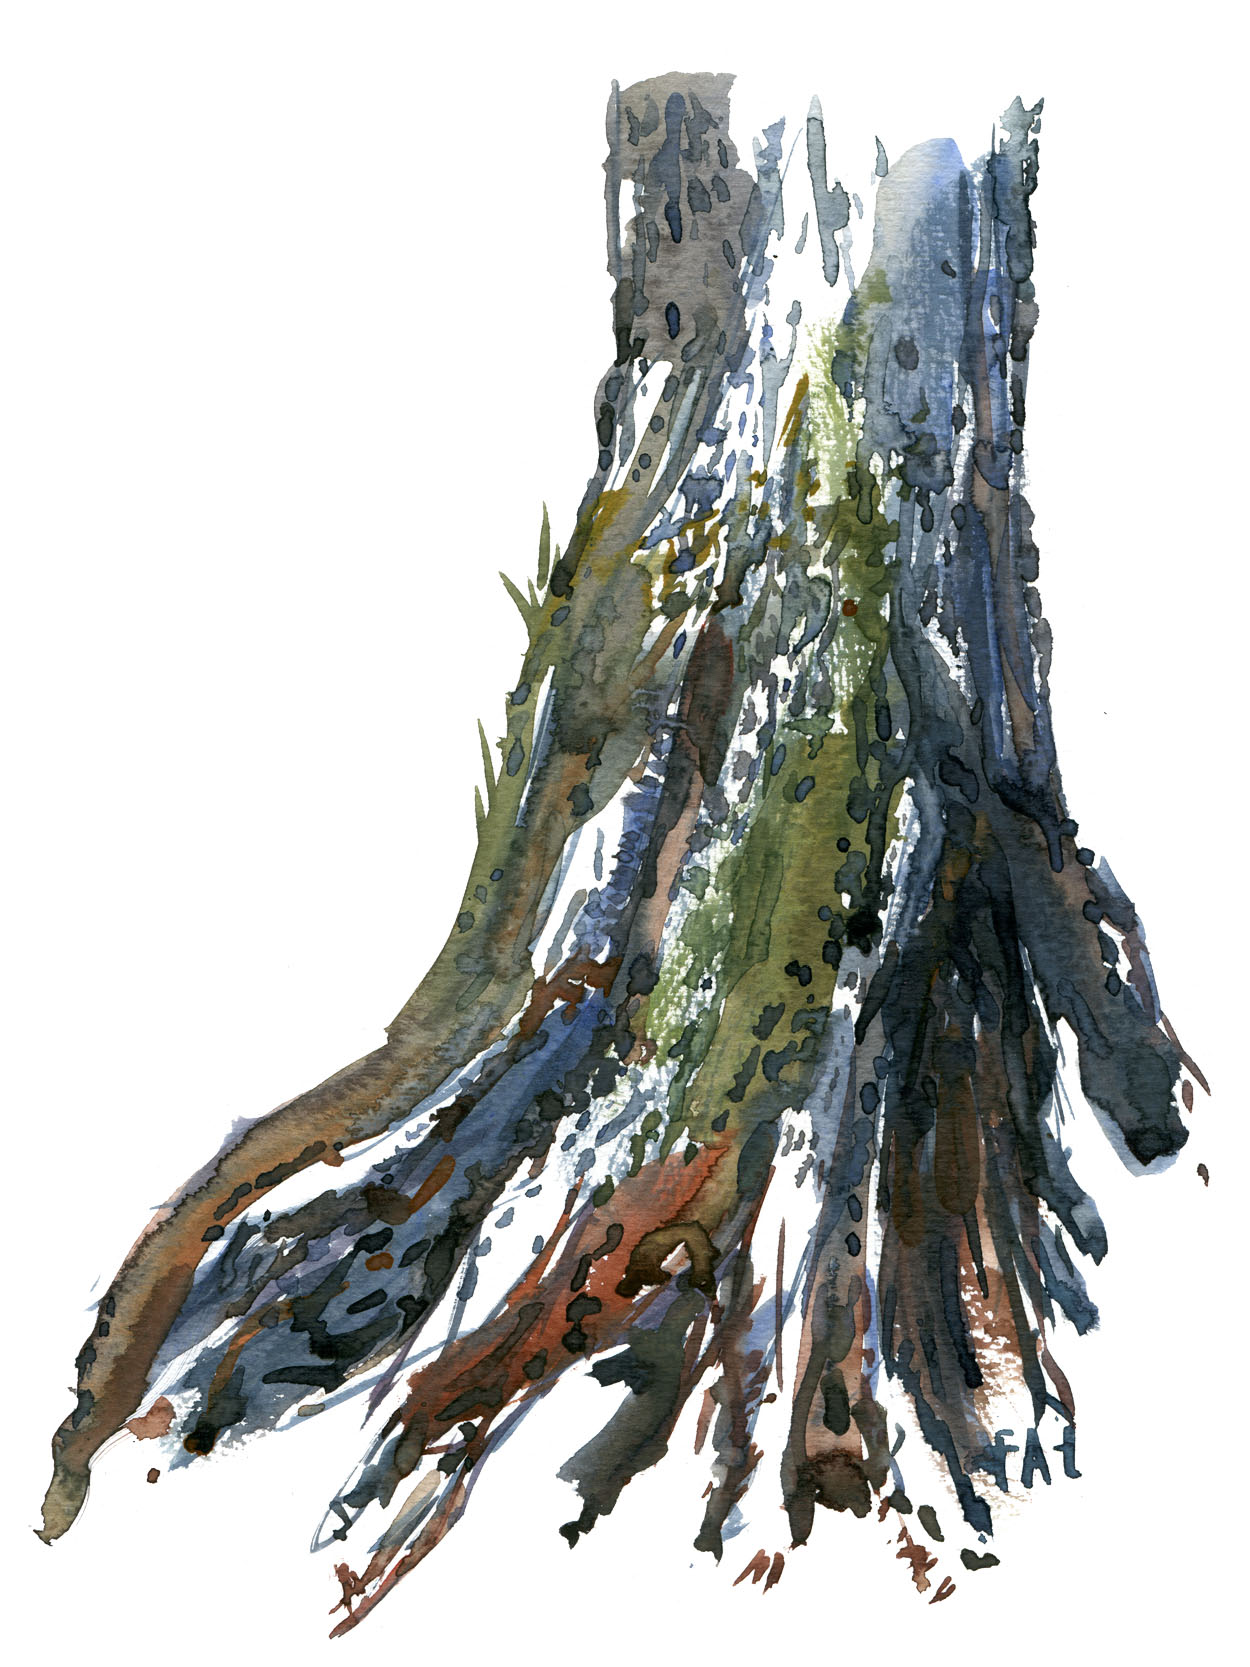 Watercolor of tree lower part. Art by Frits Ahlefeldt